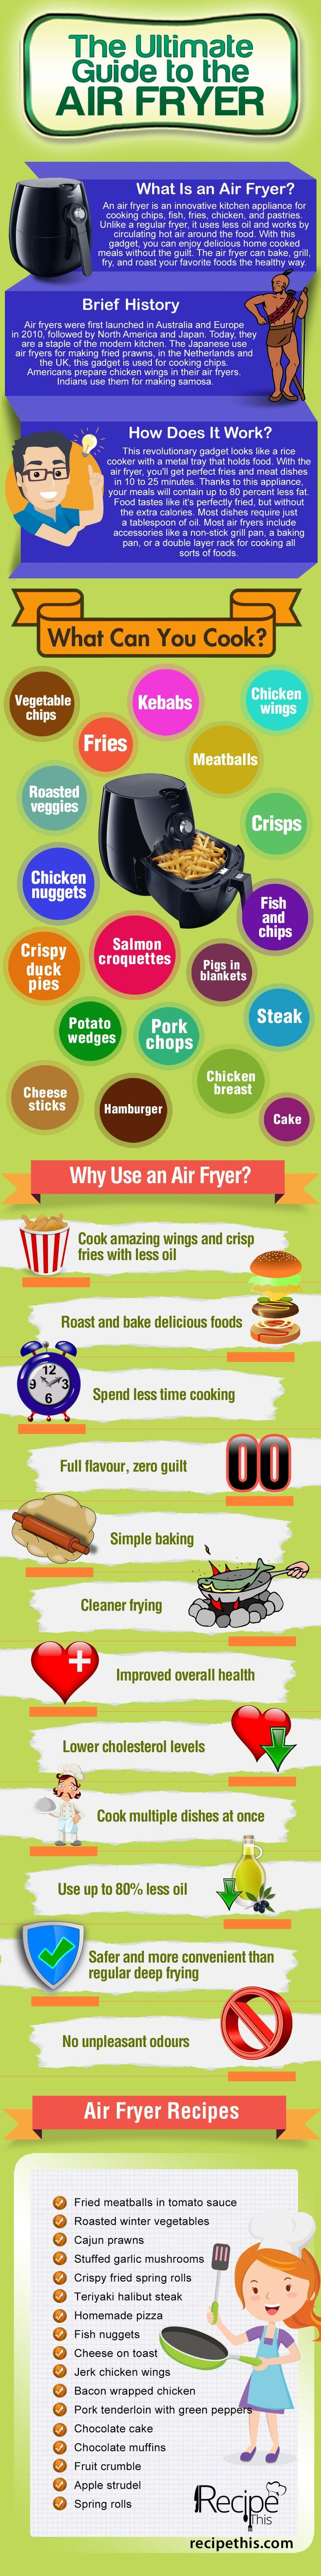 """the ultimate guide to the air fryer"""